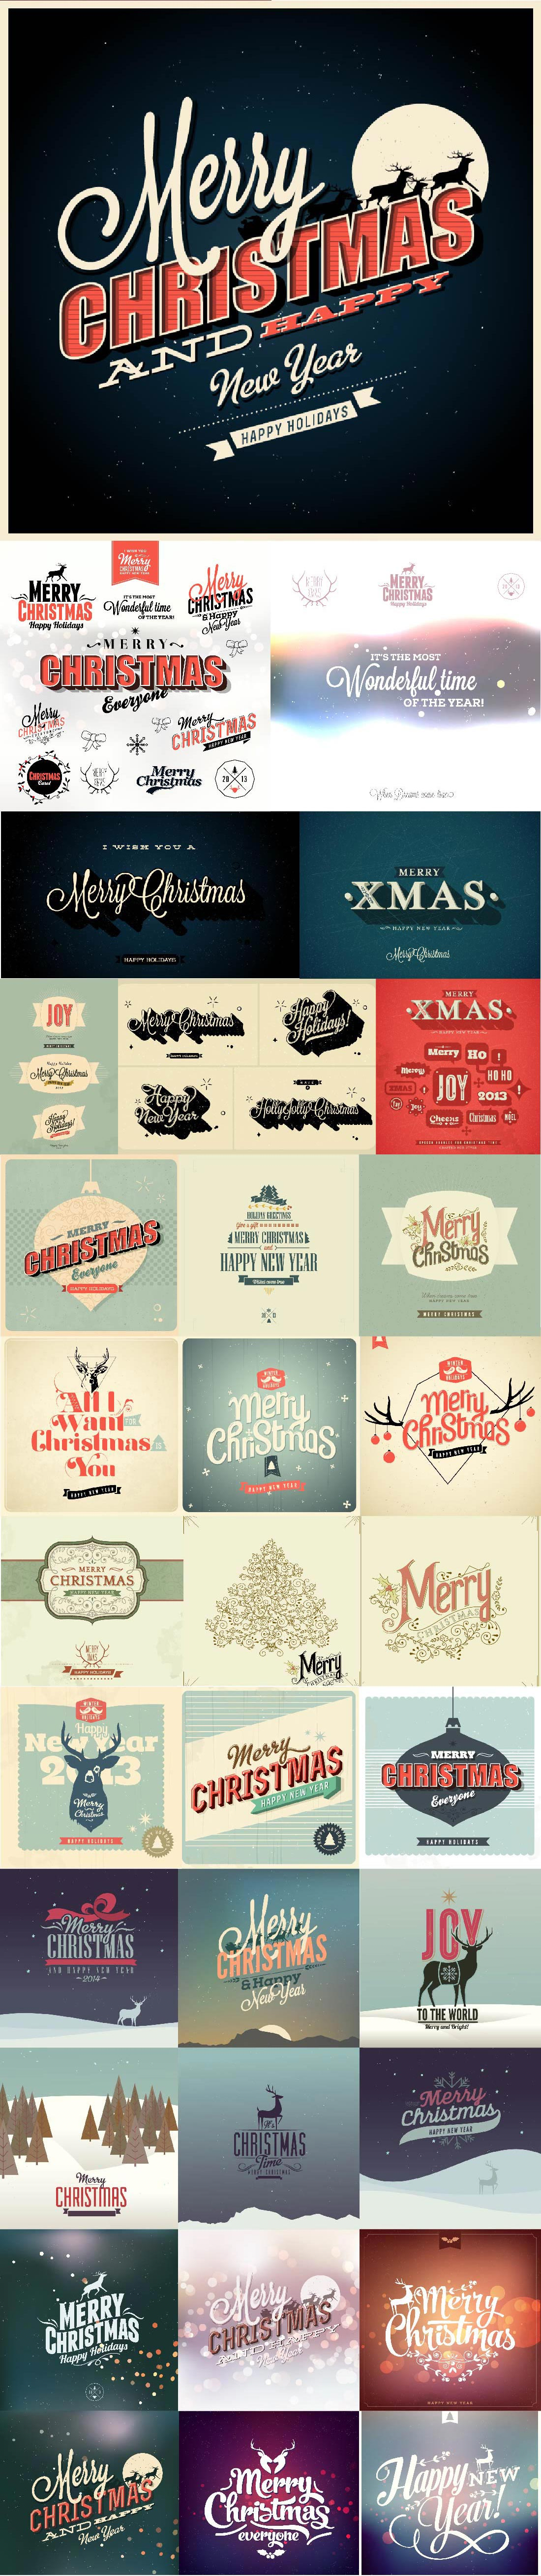 500+ Premium Vectors Collection 10